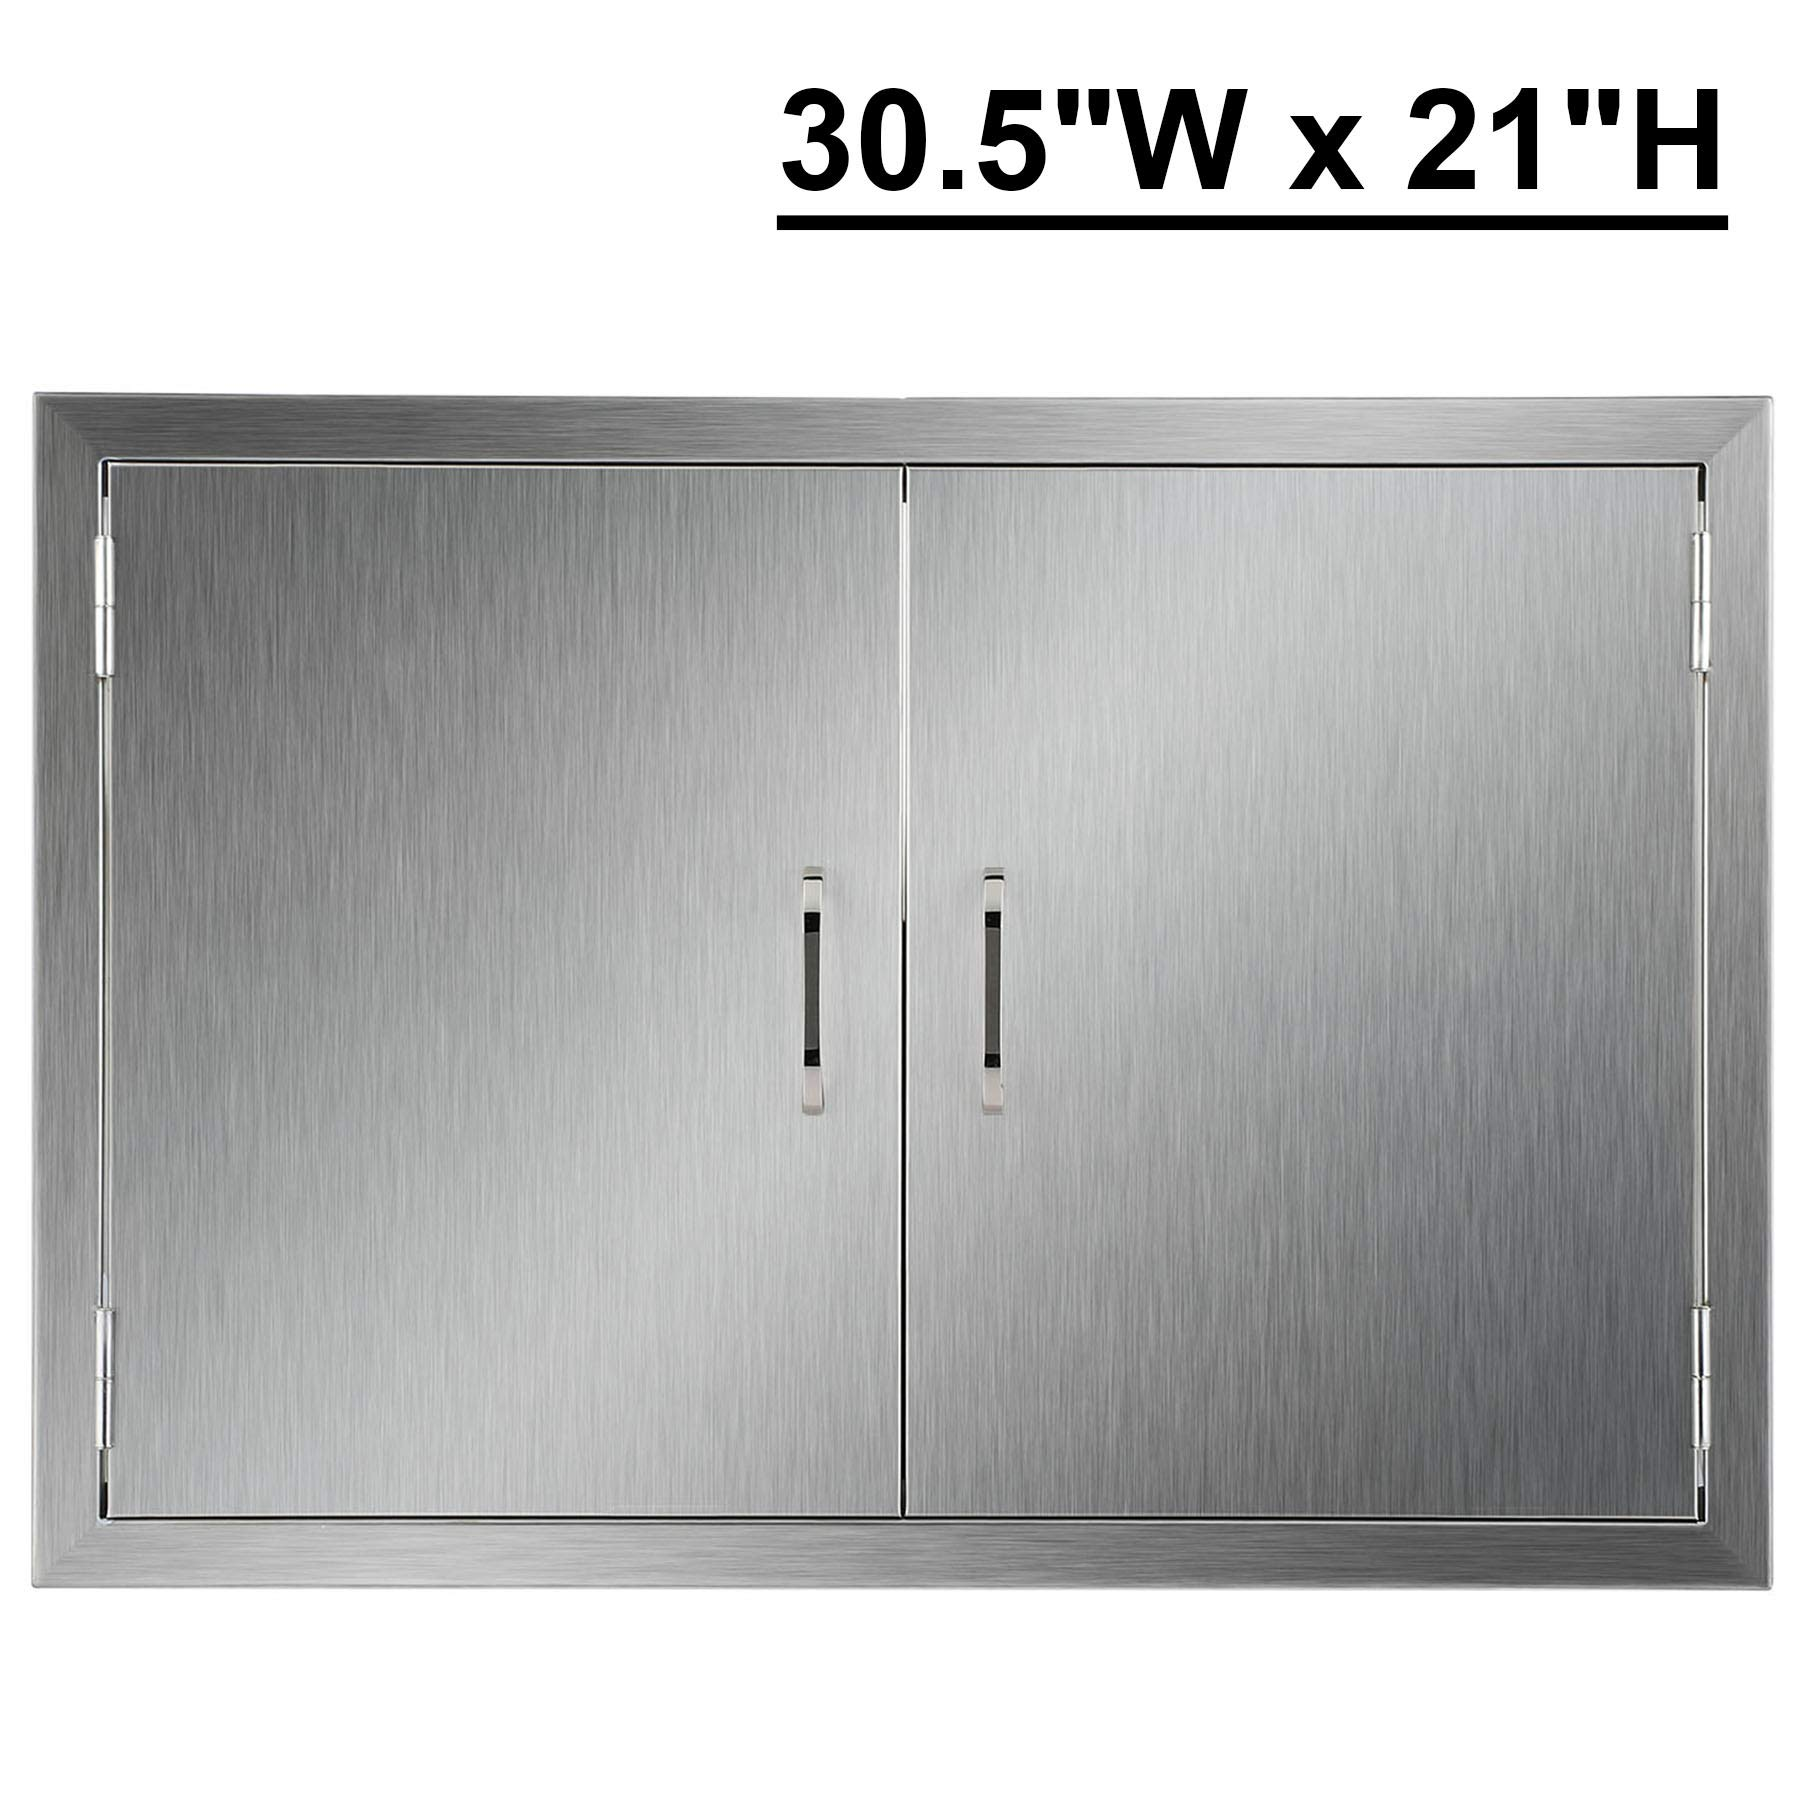 CO-Z Outdoor Kitchen Doors, 304 Brushed Stainless Steel Double BBQ Access Doors for Outdoor Kitchen, Commercial BBQ Island, Grilling Station, Outside Cabinet, Barbeque Grill, Built-in (30.5''W x 21''H) by CO-Z